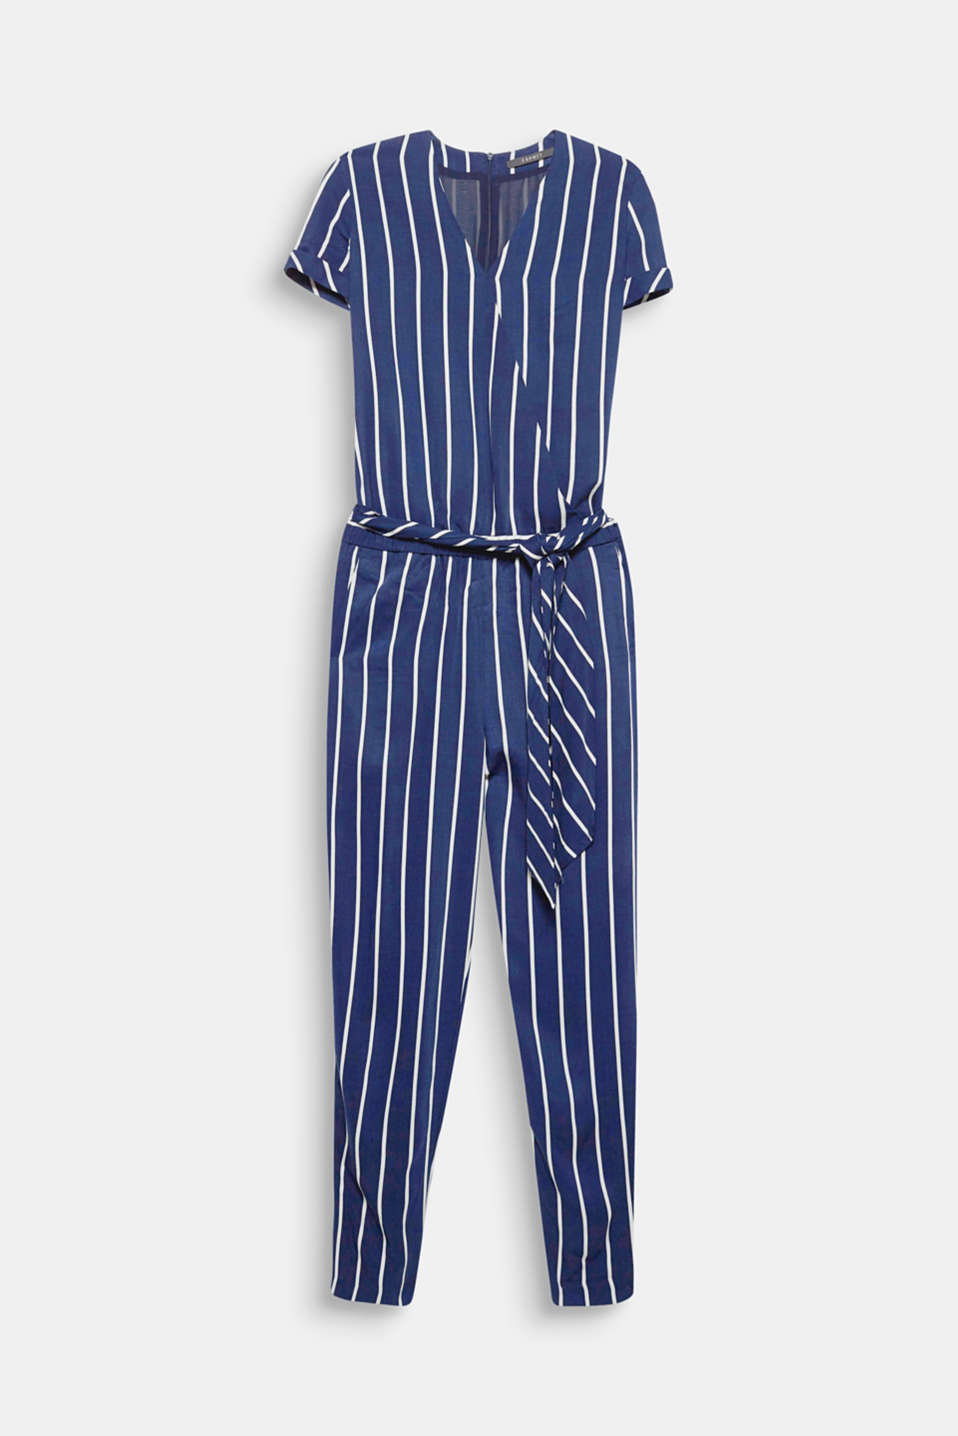 Can be styled to look casual or chic: this fashionably striped jumpsuit made of light, flowing fabric with a wrap-over effect and tie-around belt!